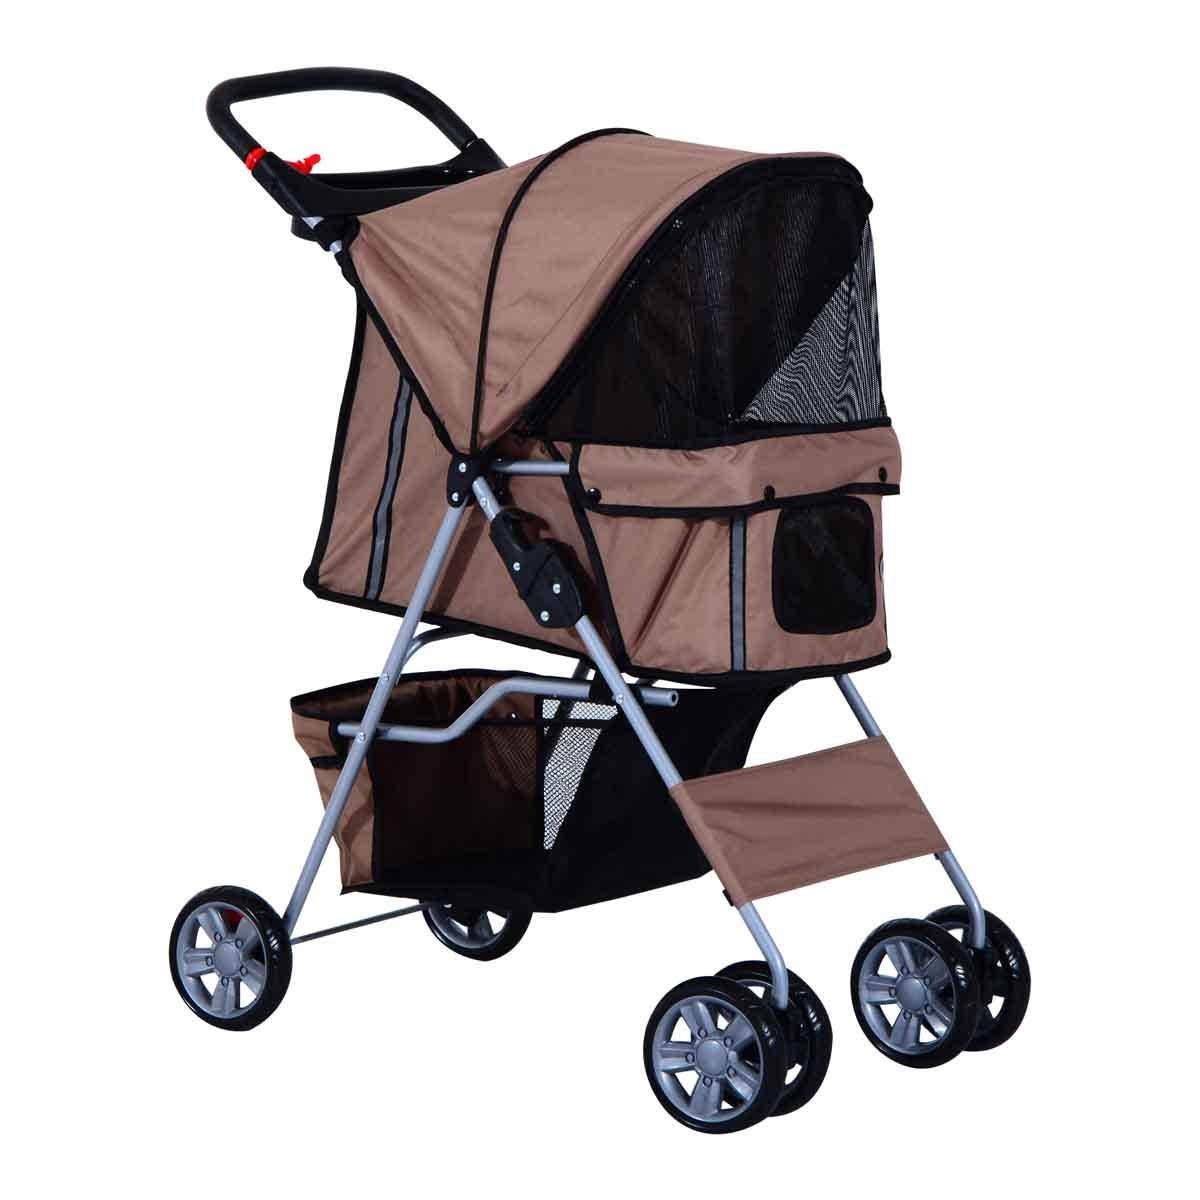 PawHut Foldable 4 Wheels Deluxe Pet Stroller & Carrier For Travel W/ Dogs & Cats - Brown